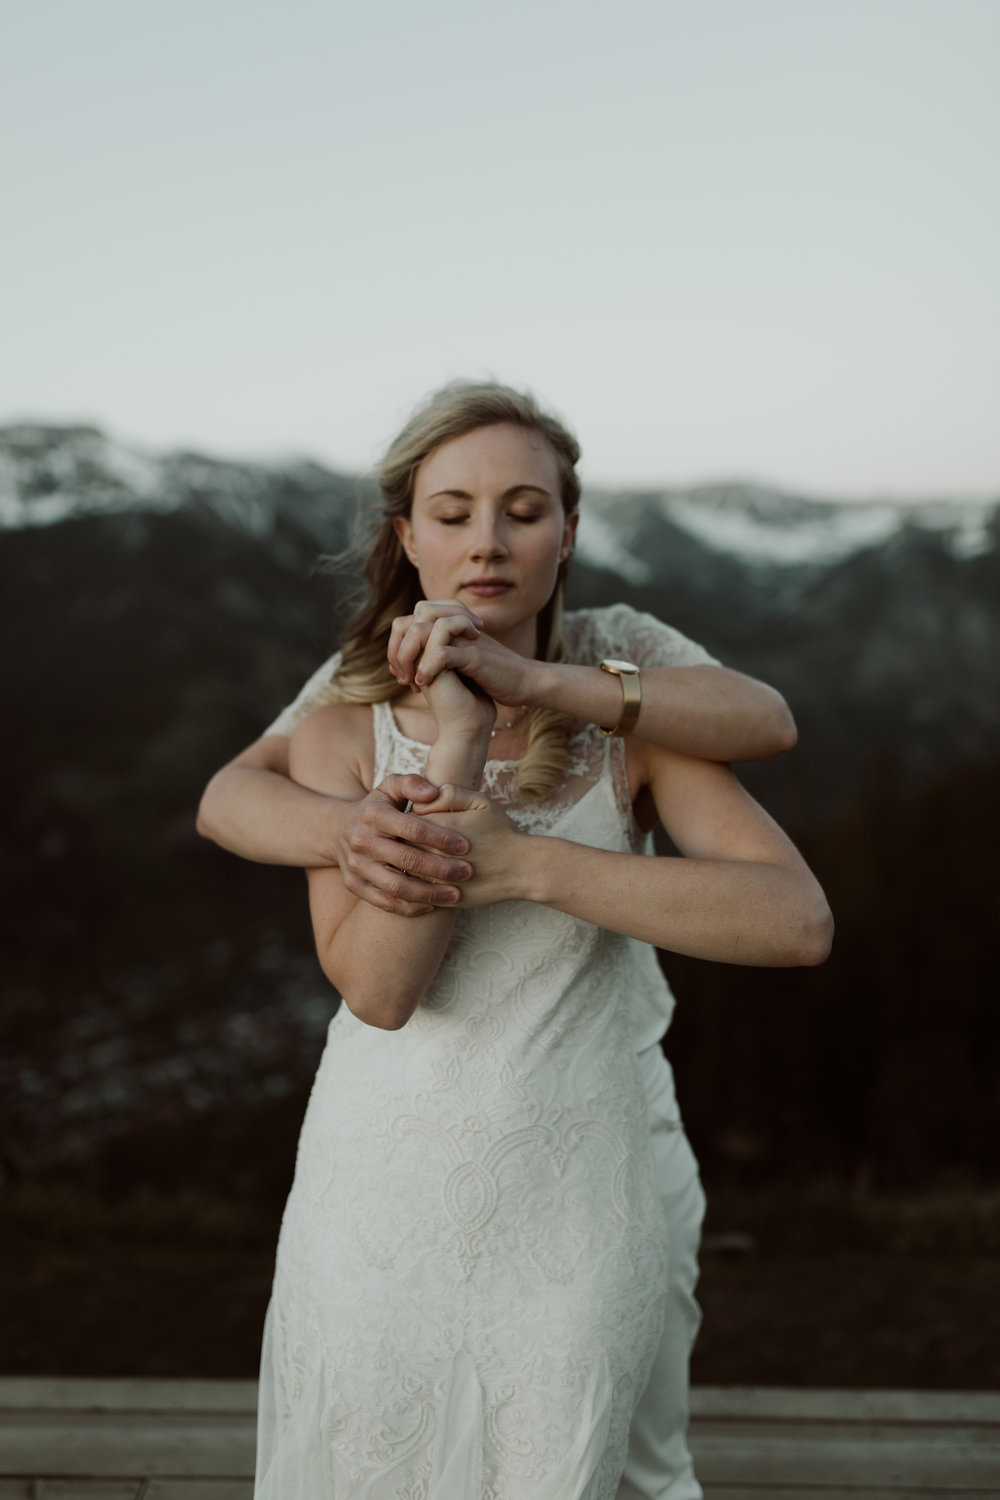 cedarandpines-intimate-san-sofia-telluride-colorado-wedding-61.jpg